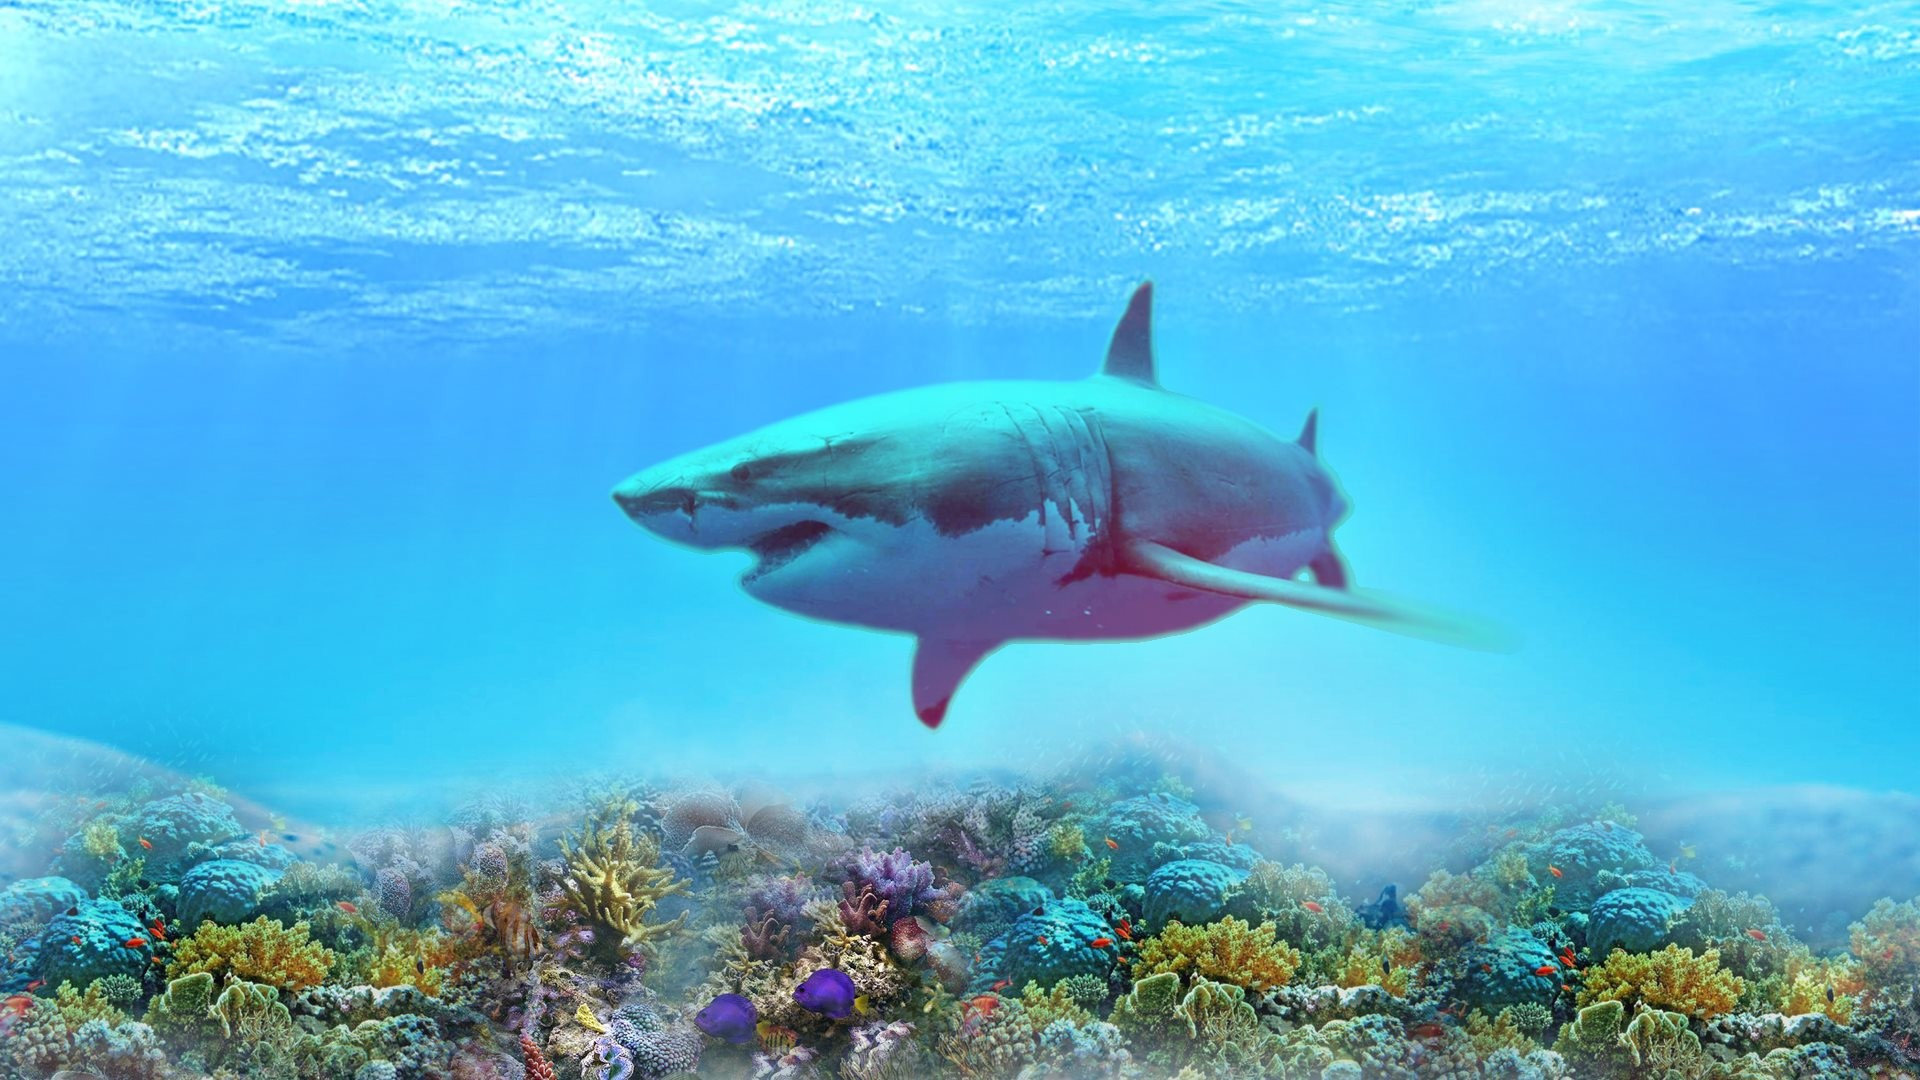 Sharks wallpapers 60 images 2560x1440 creative graphics mermaid wallpaper voltagebd Images